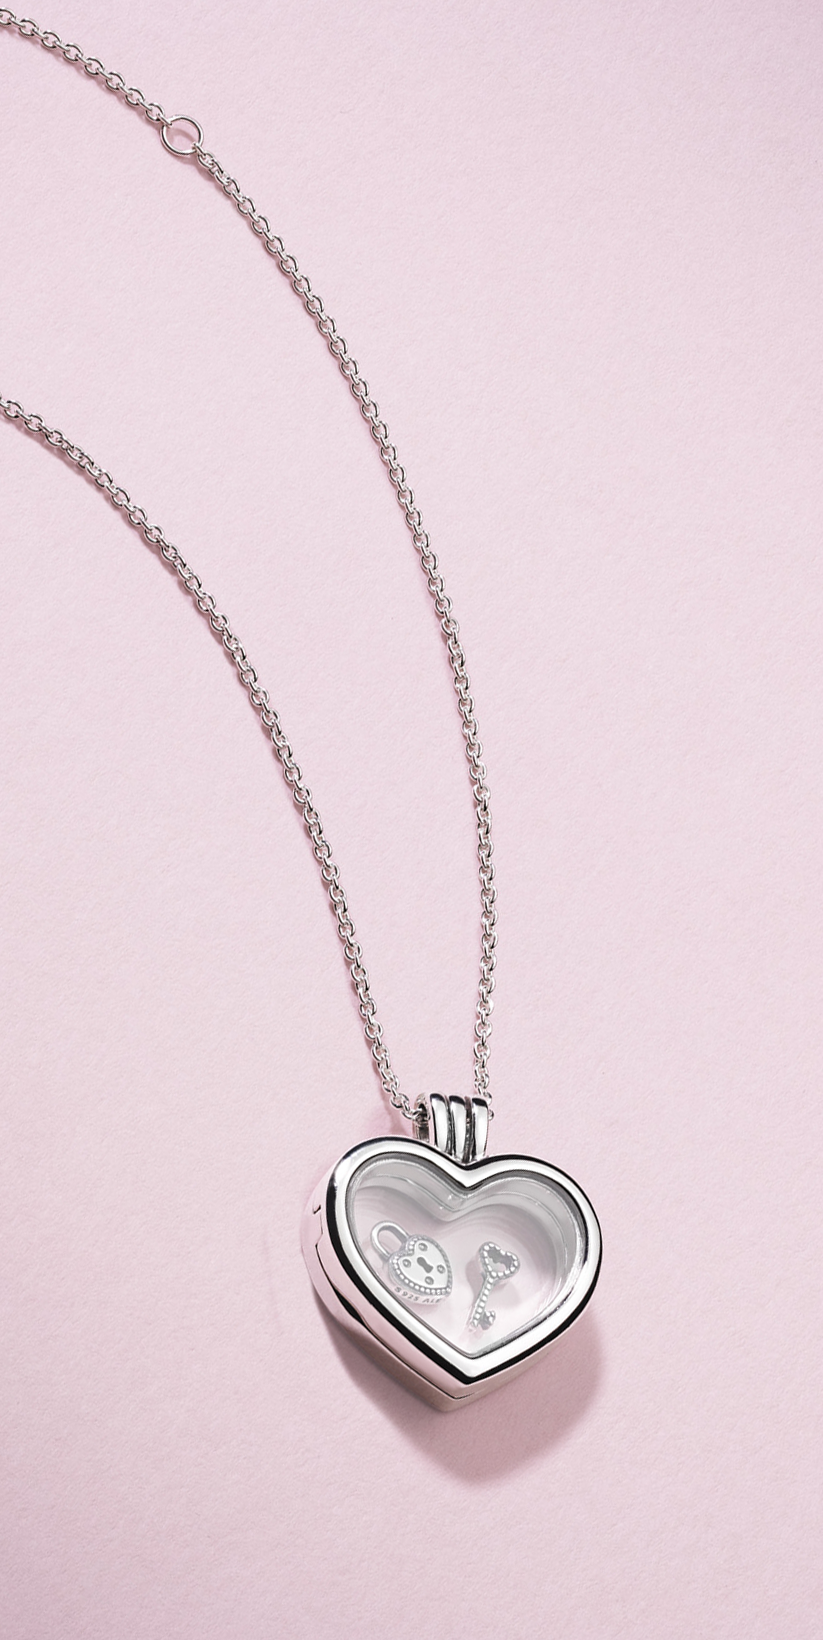 Personalise your love with the PANDORA sterling silver heart locket. Choose your personal petite favourites for your own unique love statement.